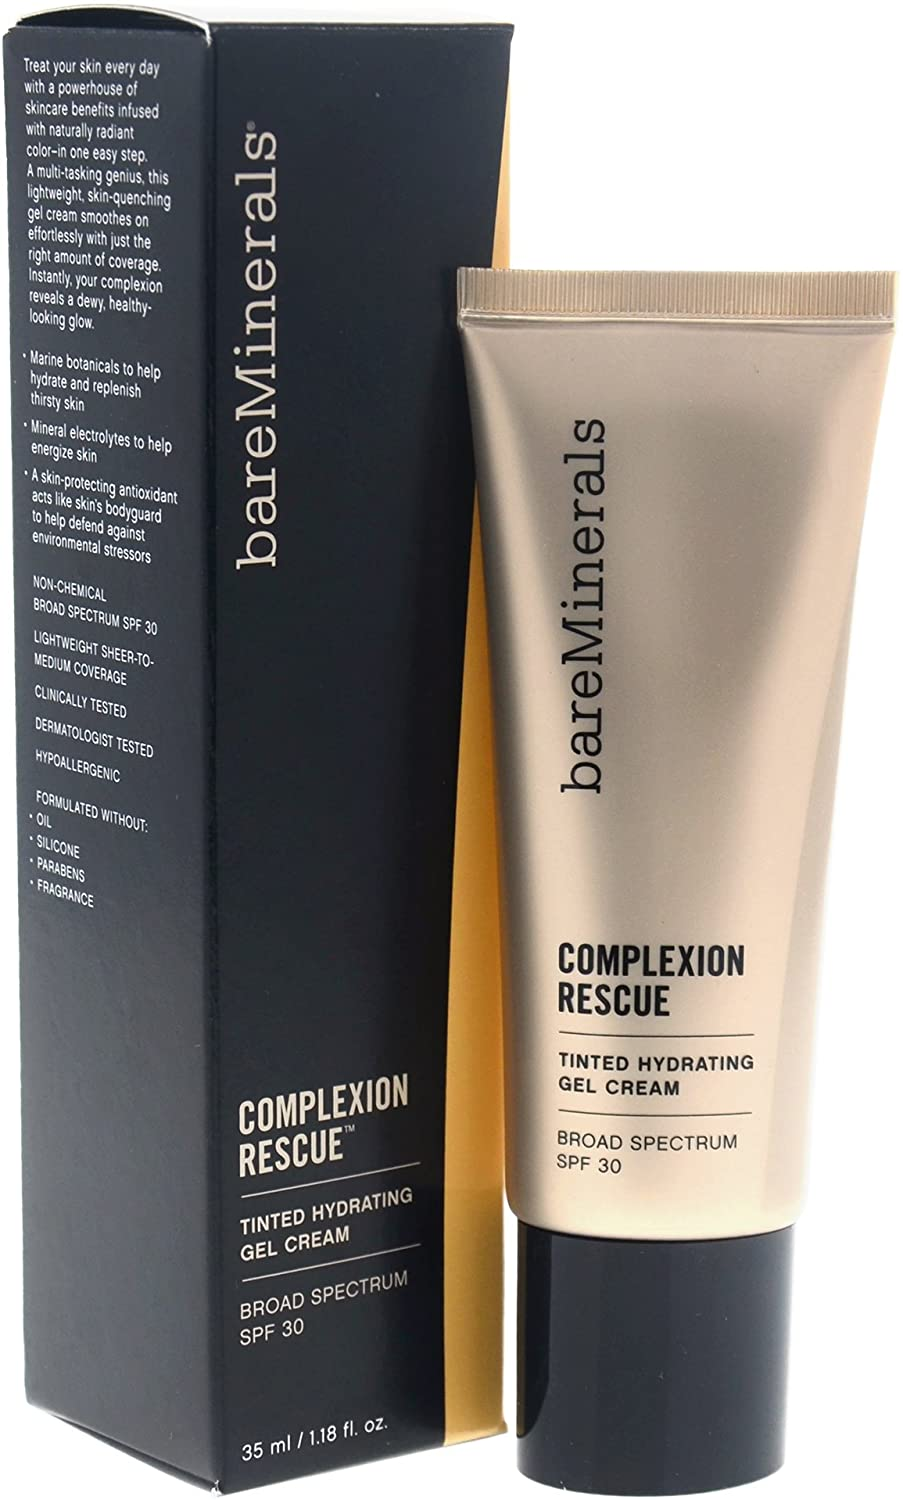 bareMinerals Complexion Rescue Tinted Hydrating Gel Cream SPF 30, Buttercream 03, 1.18 Ounce